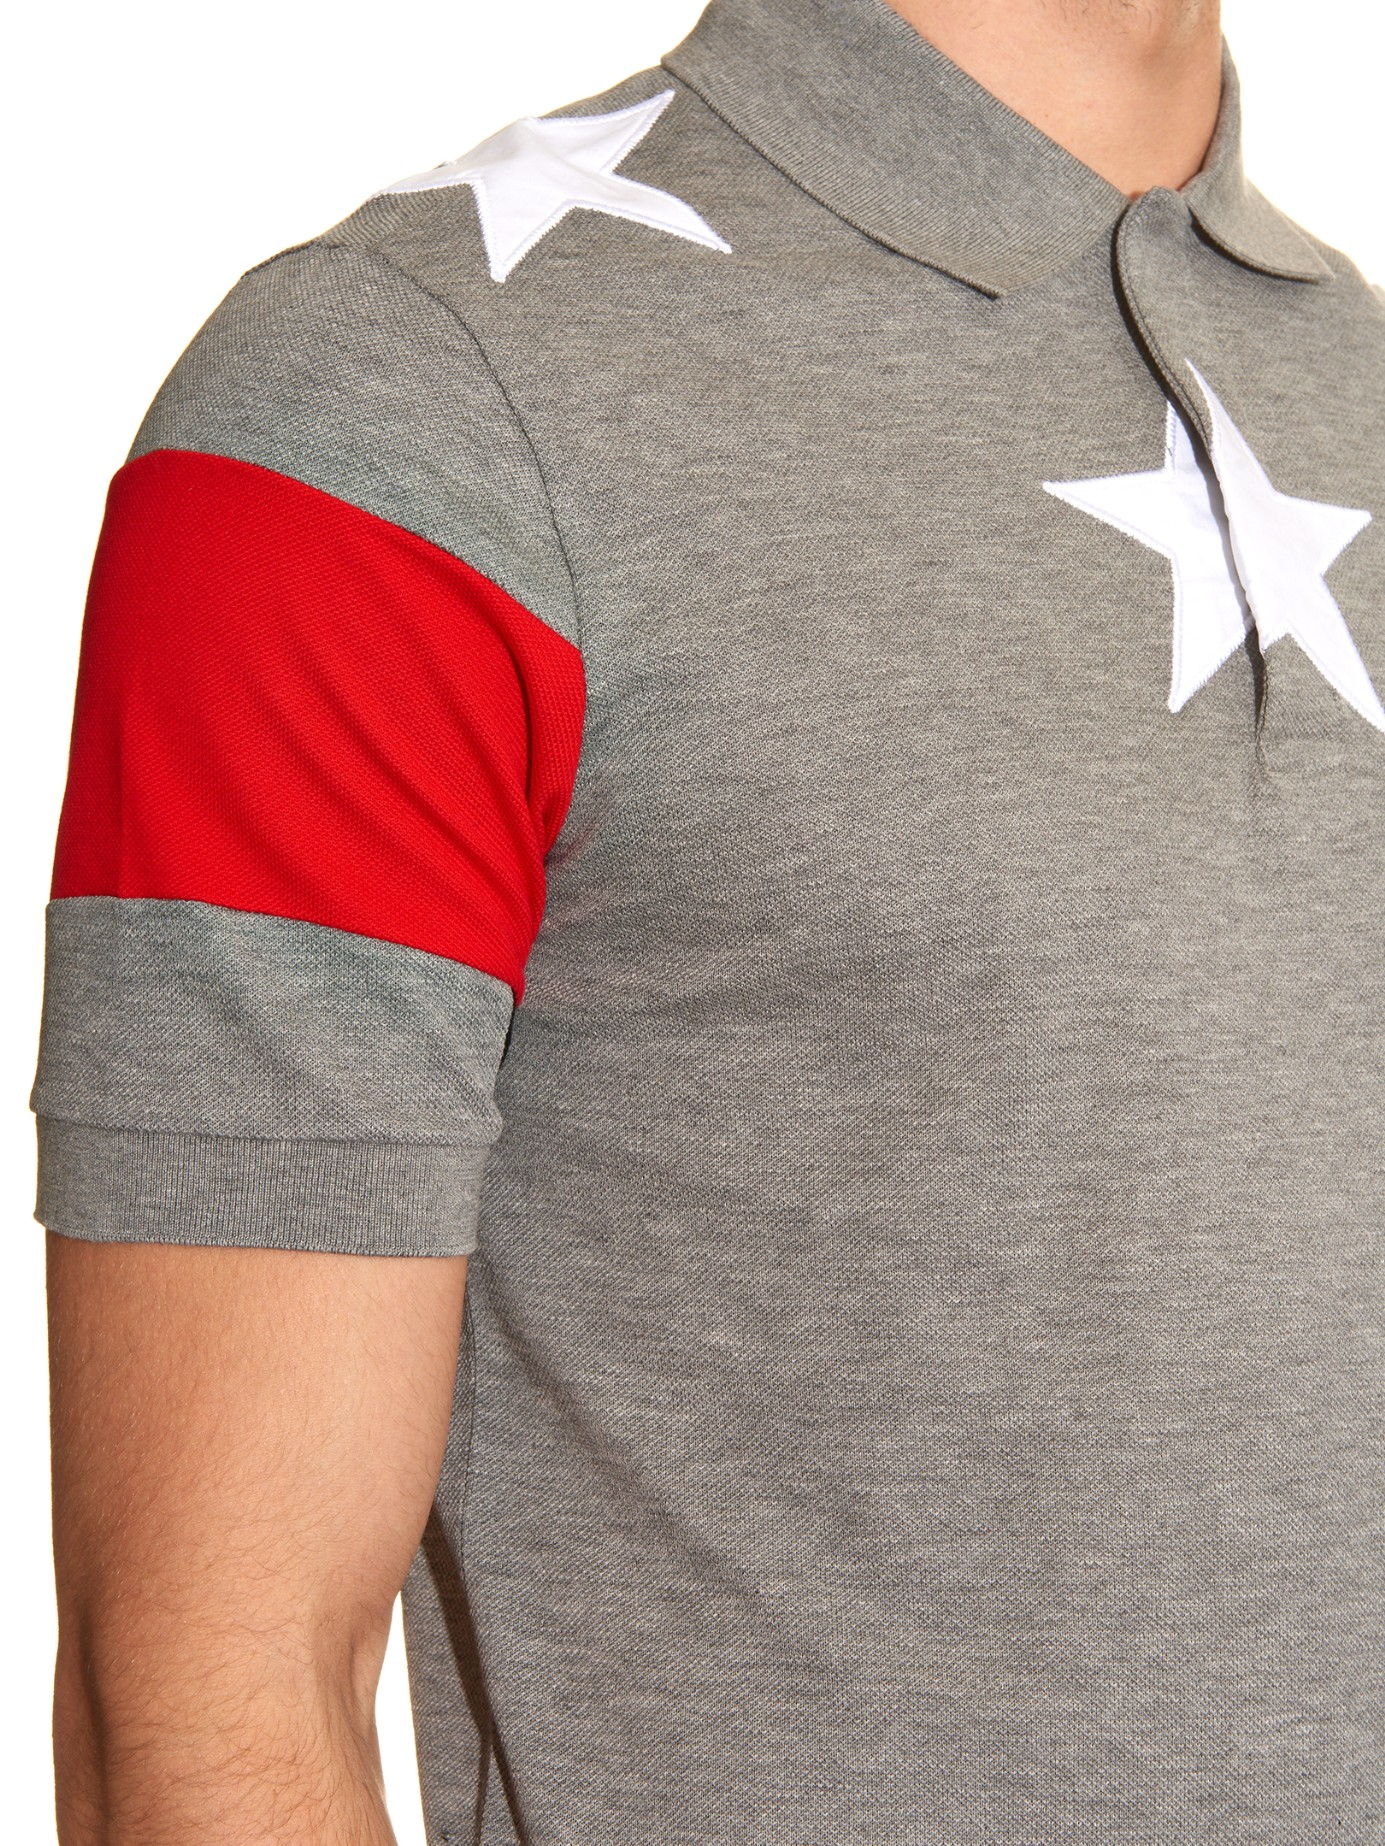 d6da683d Givenchy Cuban-Fit Star-Embroidered Polo Shirt in Gray for Men - Lyst